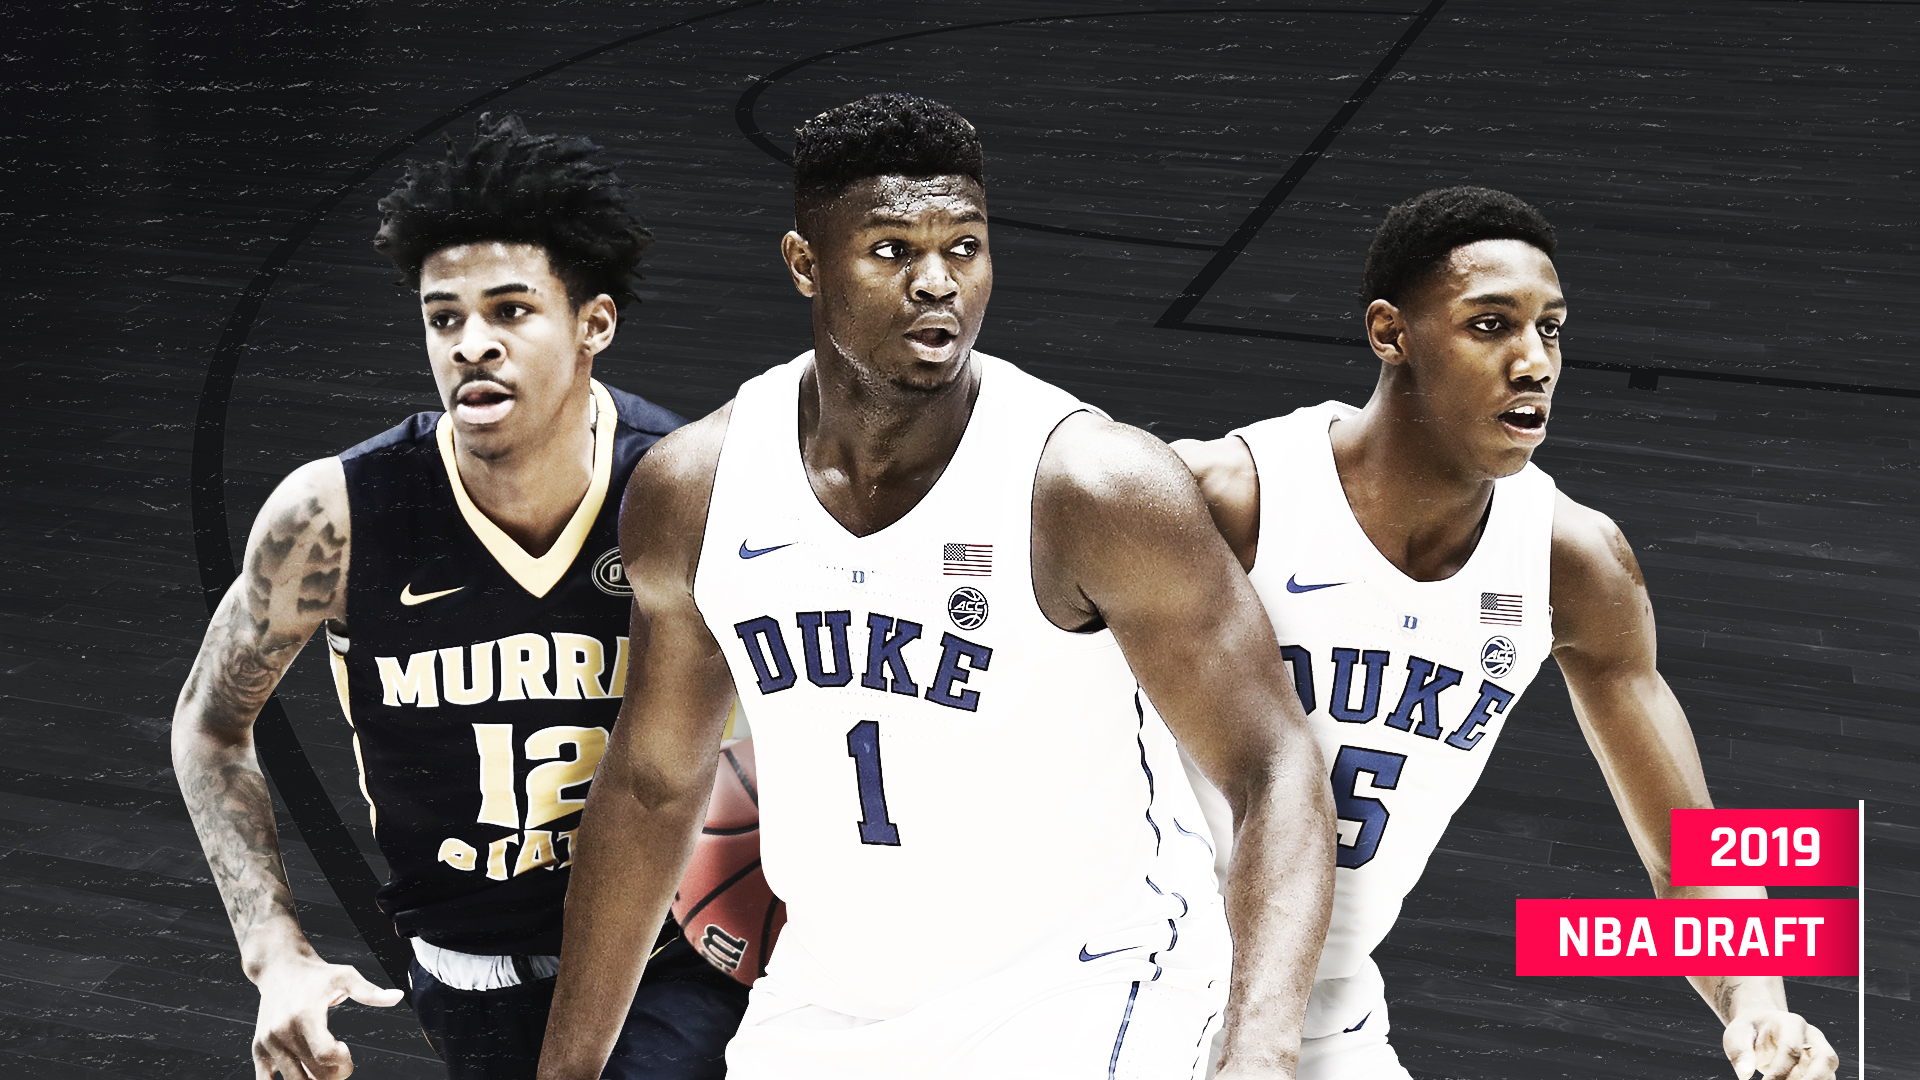 NBA Draft results 2019: Grades, analysis for every pick in Rounds 1-2